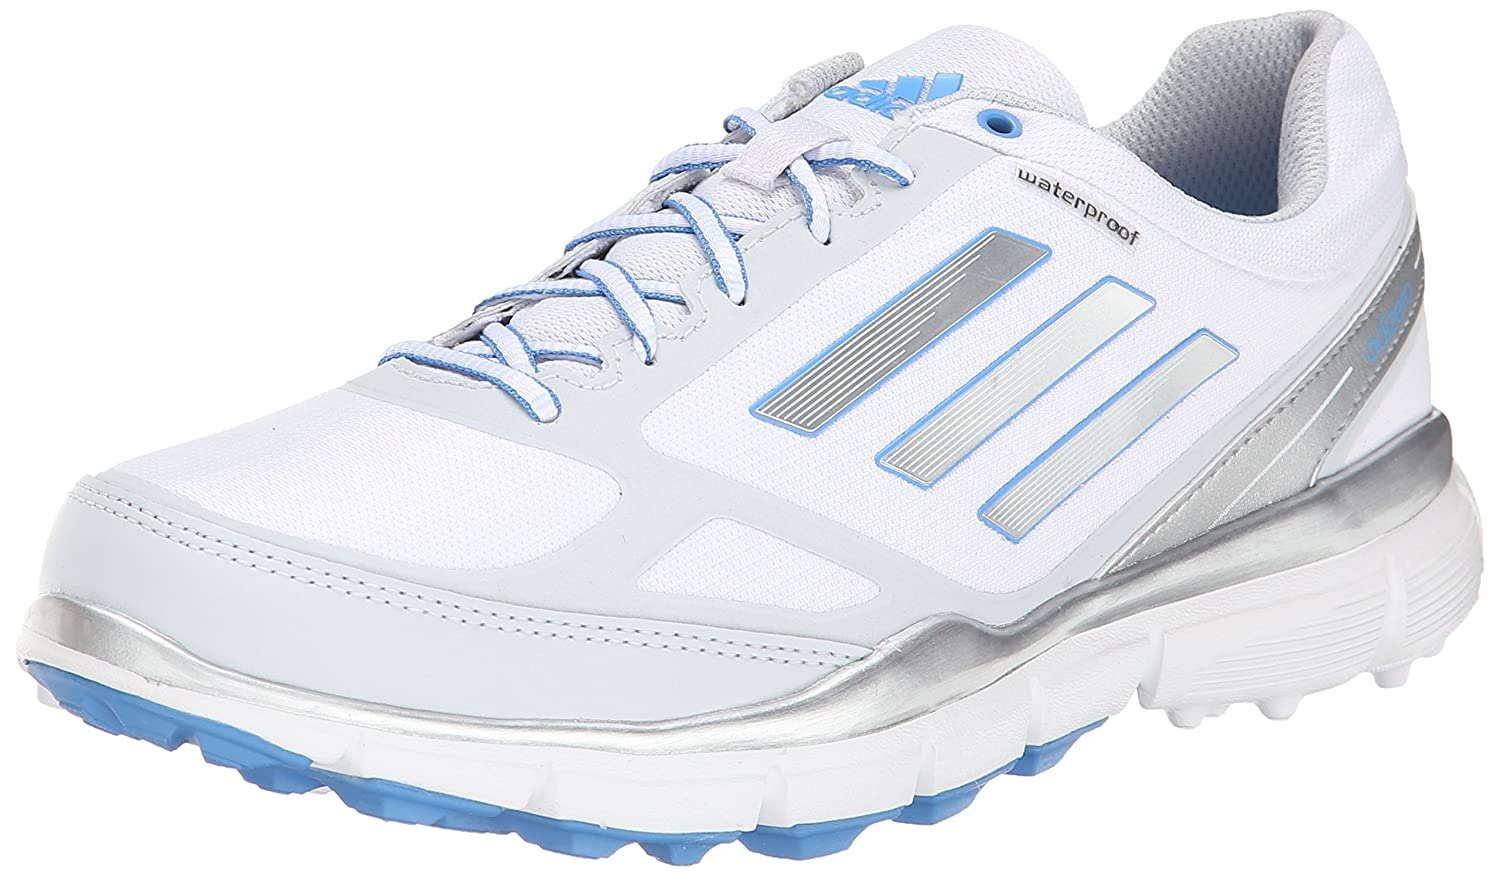 adidas Women's W Adizero Sport III Golf Shoe B00NVSBG7E 8 B(M) US|Running White/Silver Metallic/Lucky Blue